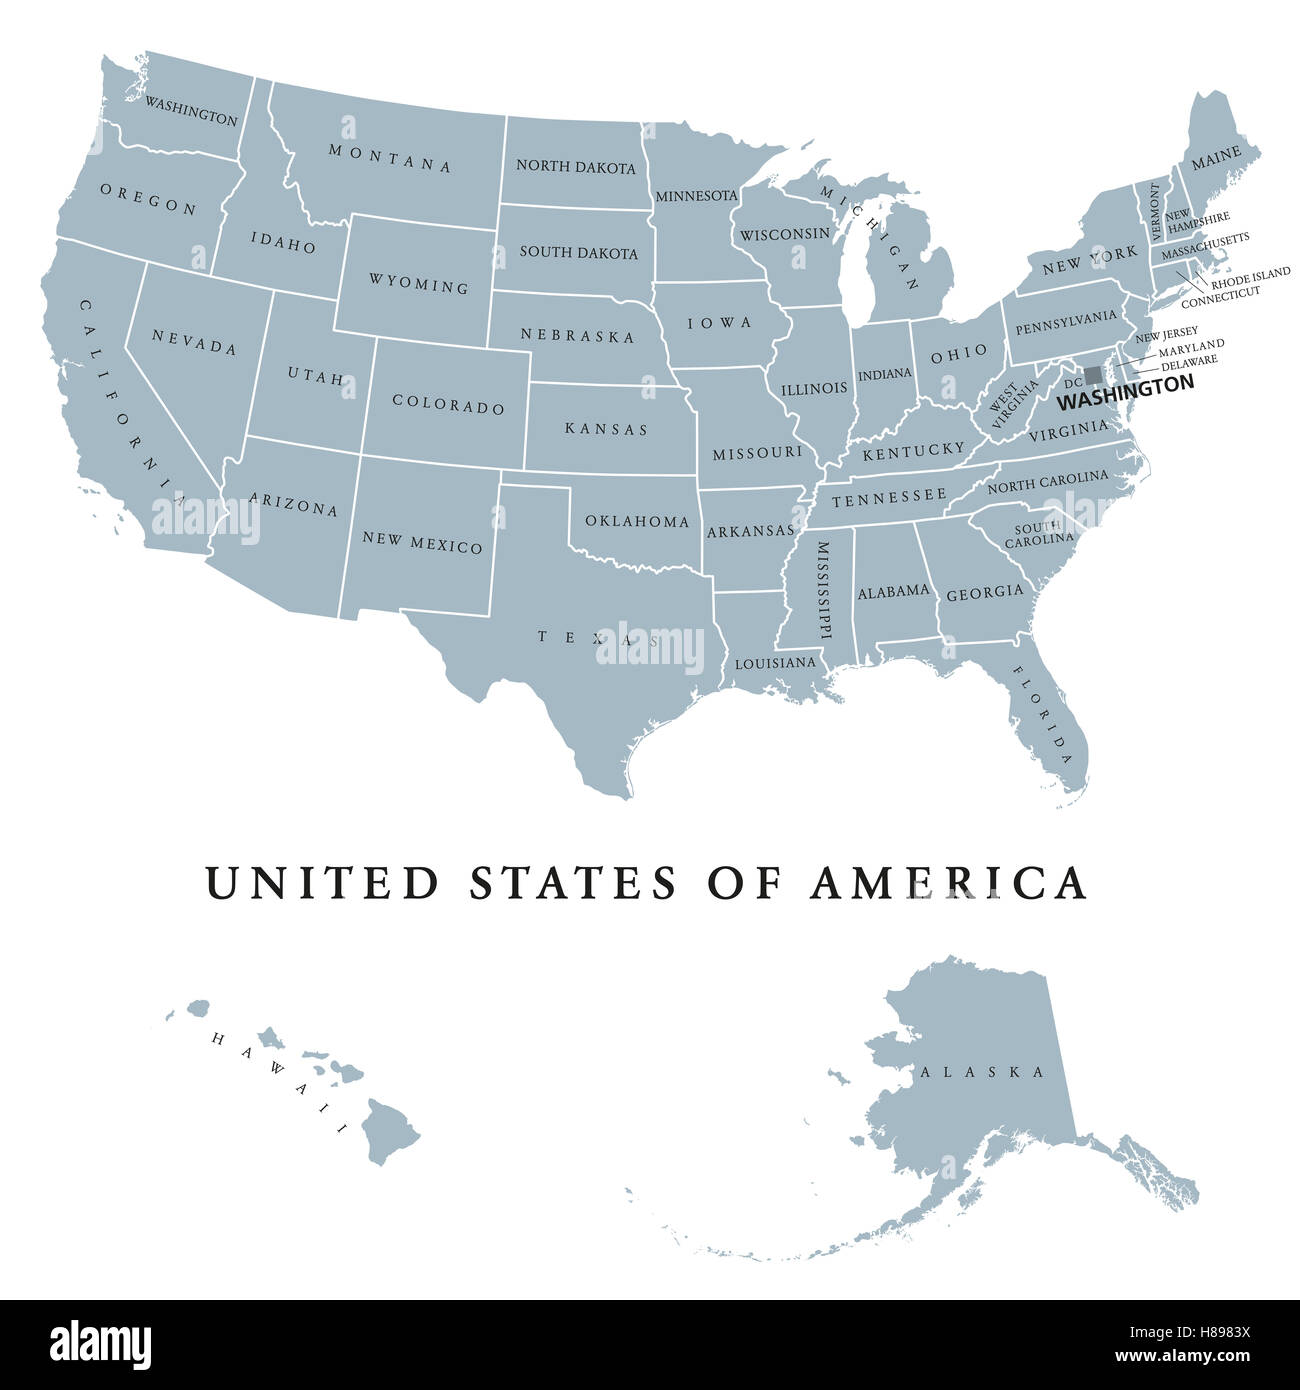 USA United States Of America Political Map With Capital Washington - Map usa state capitals